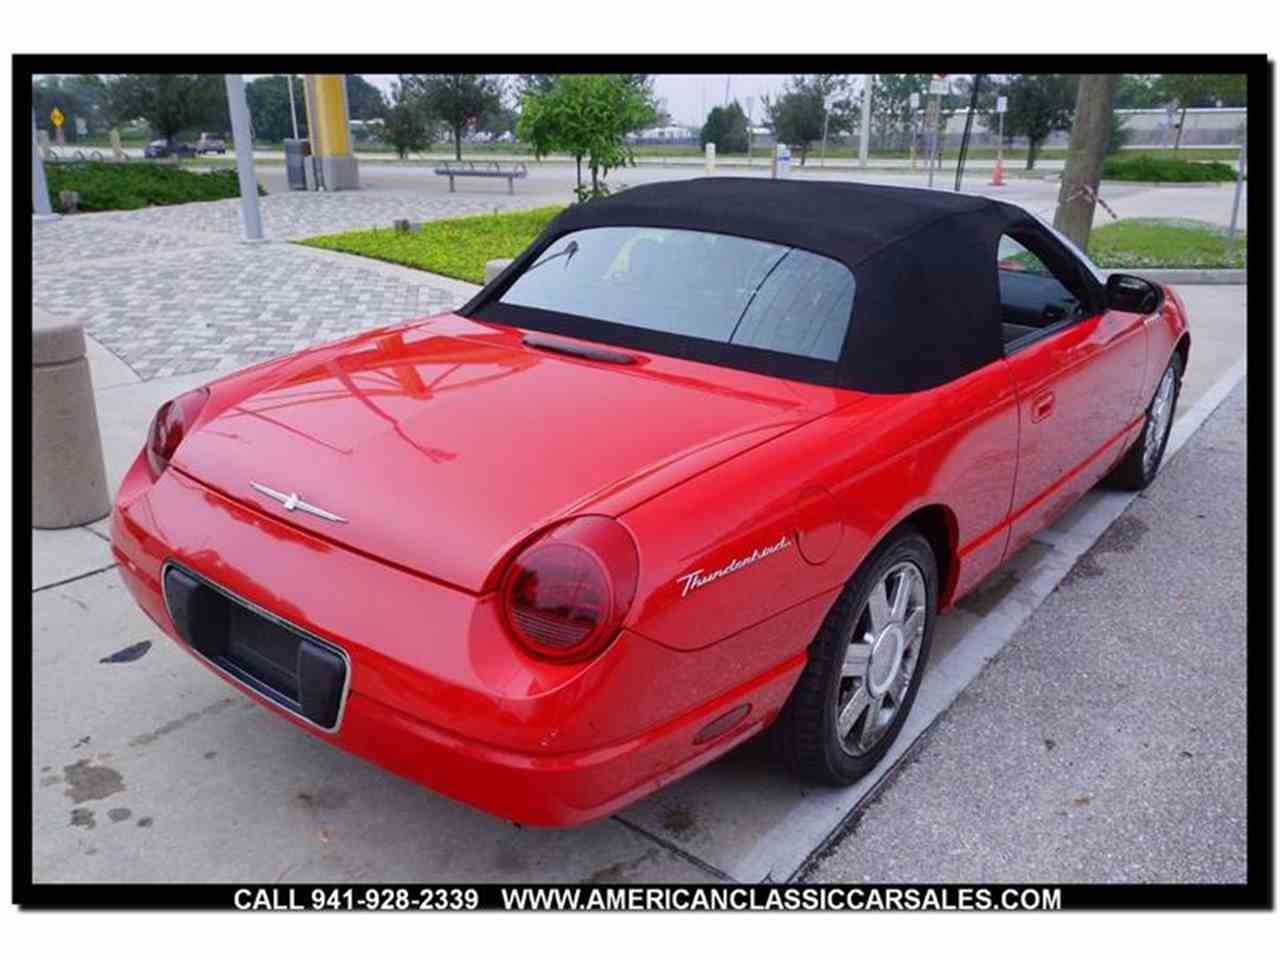 Large Picture of 2004 Thunderbird - $12,440.00 - MCAN